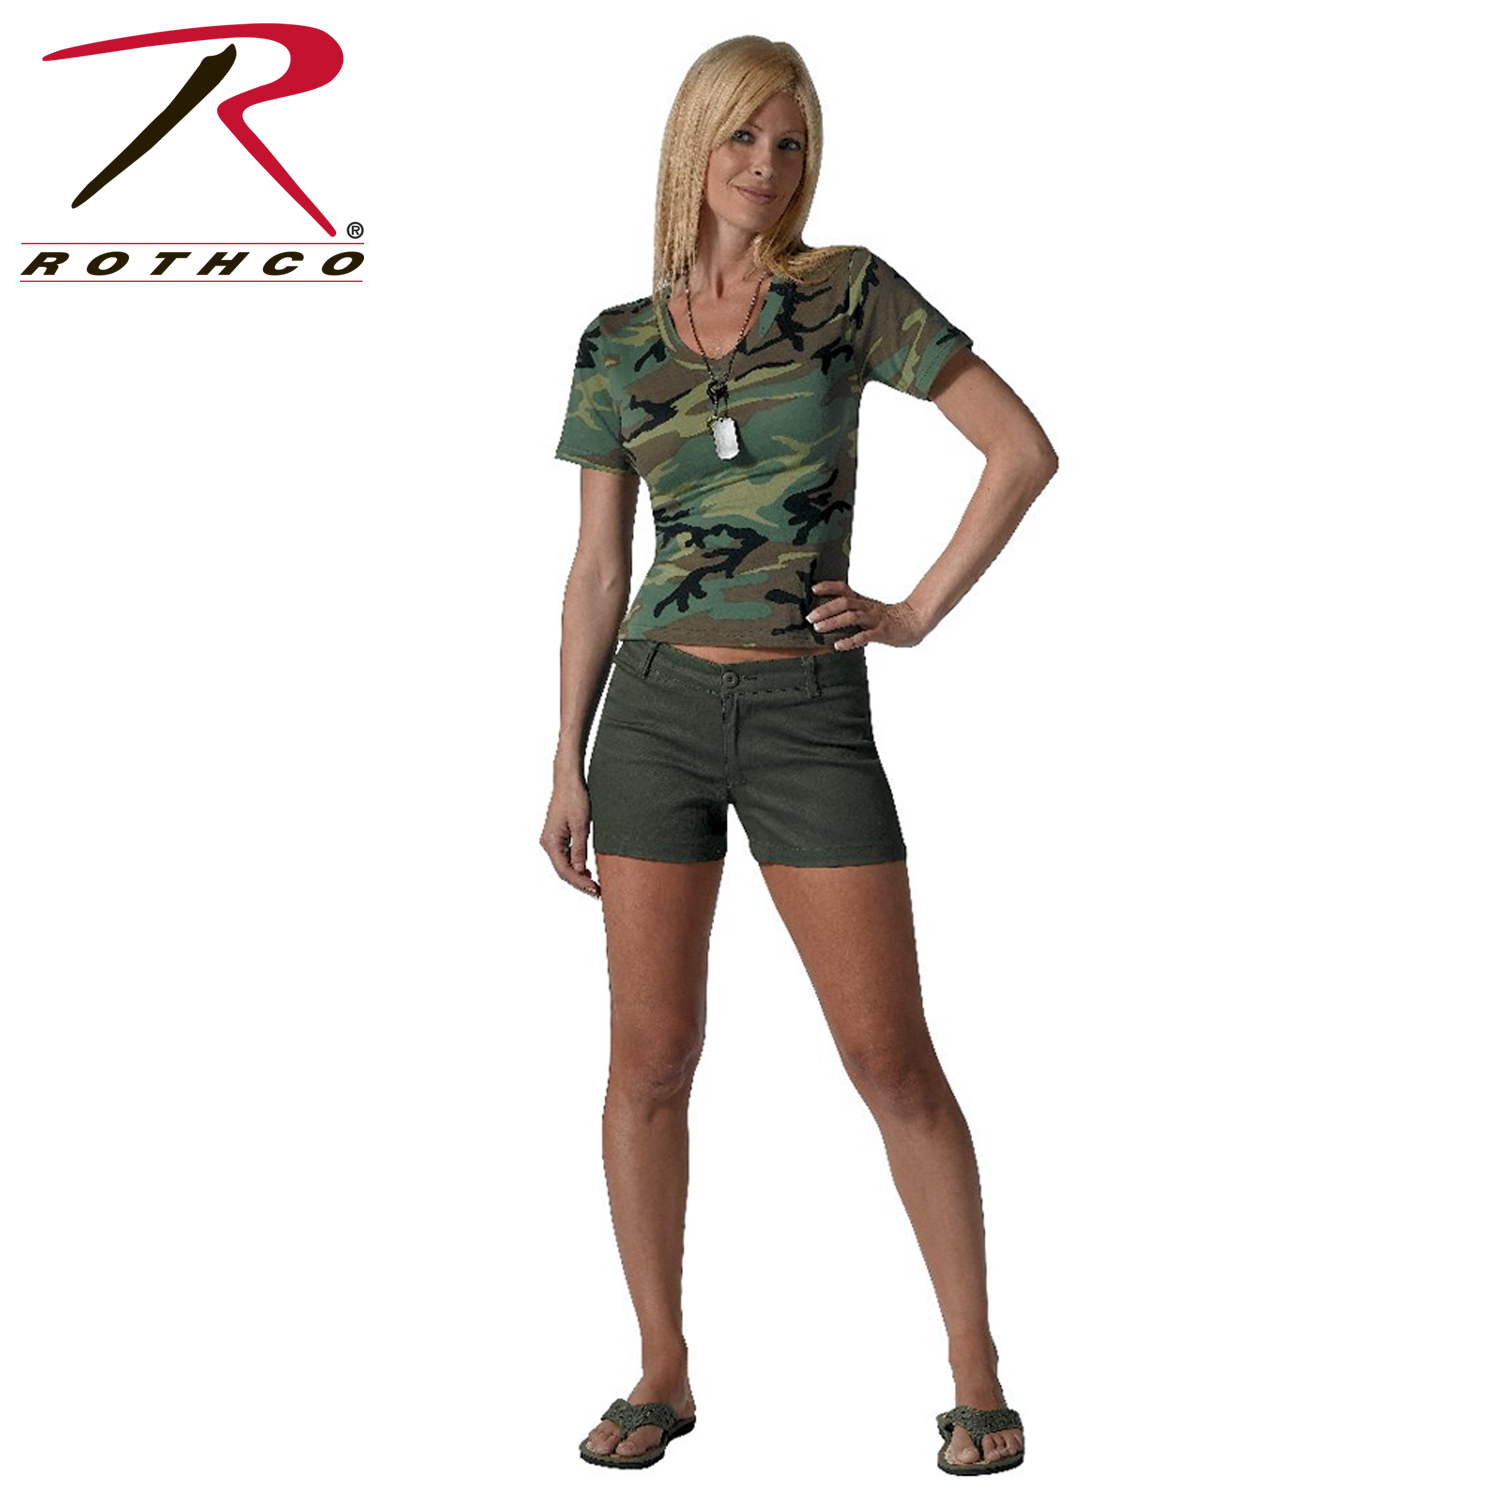 Displaying 18> Images For - Women In Camo Calendar